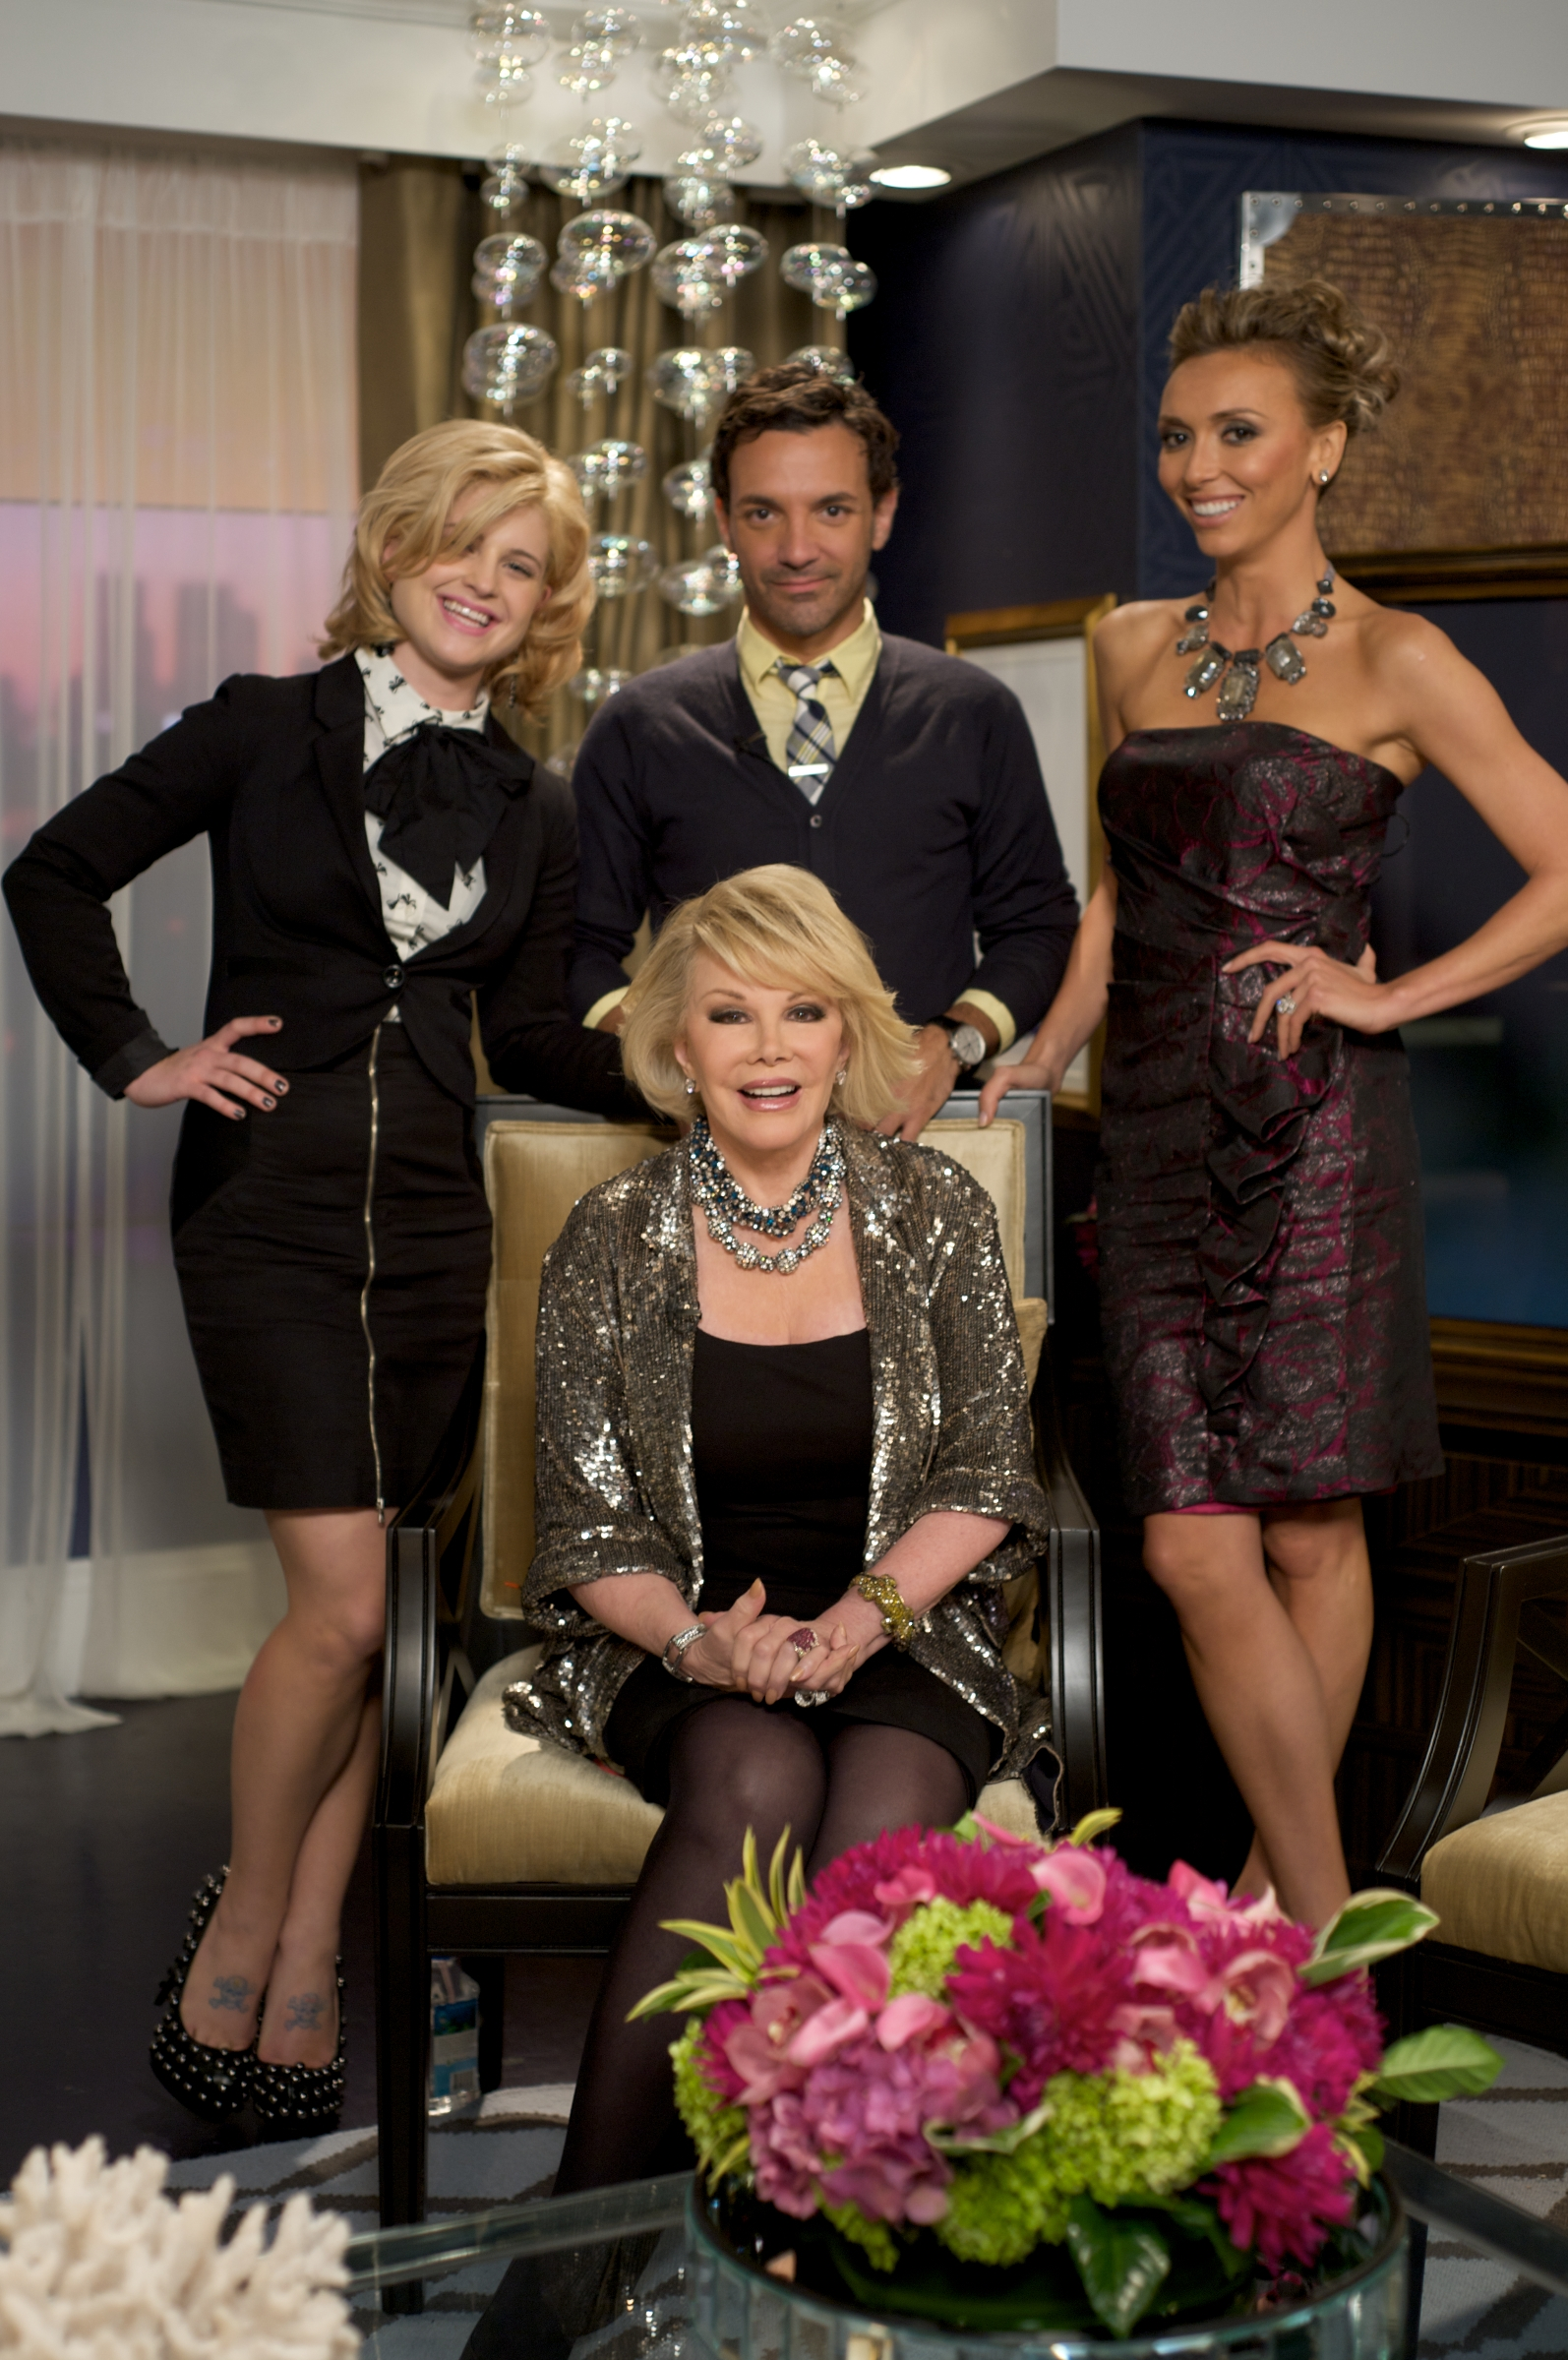 Fashion Police Joan Rivers Full Episodes Joan Rivers is captain of the